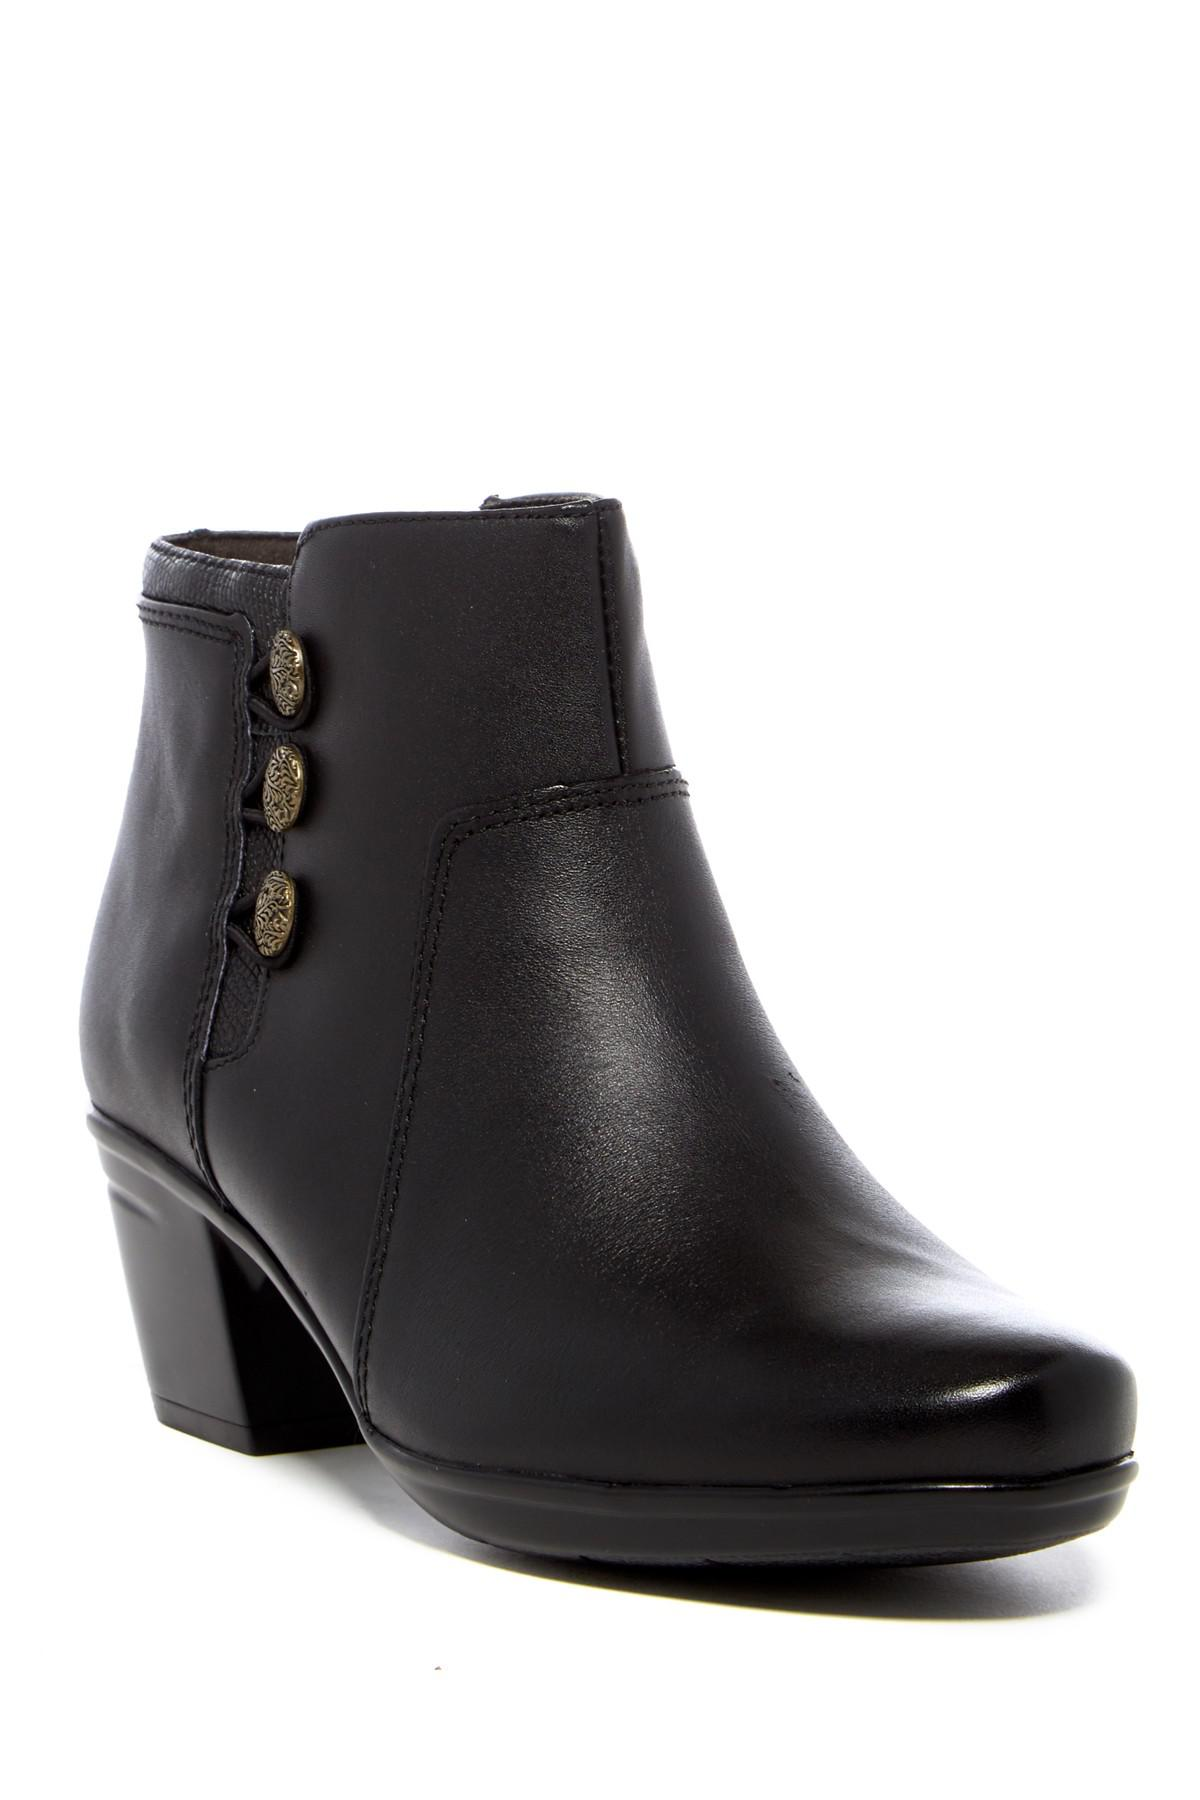 Lyst Clarks Emslie Monet Buttoned Ankle Boot Wide